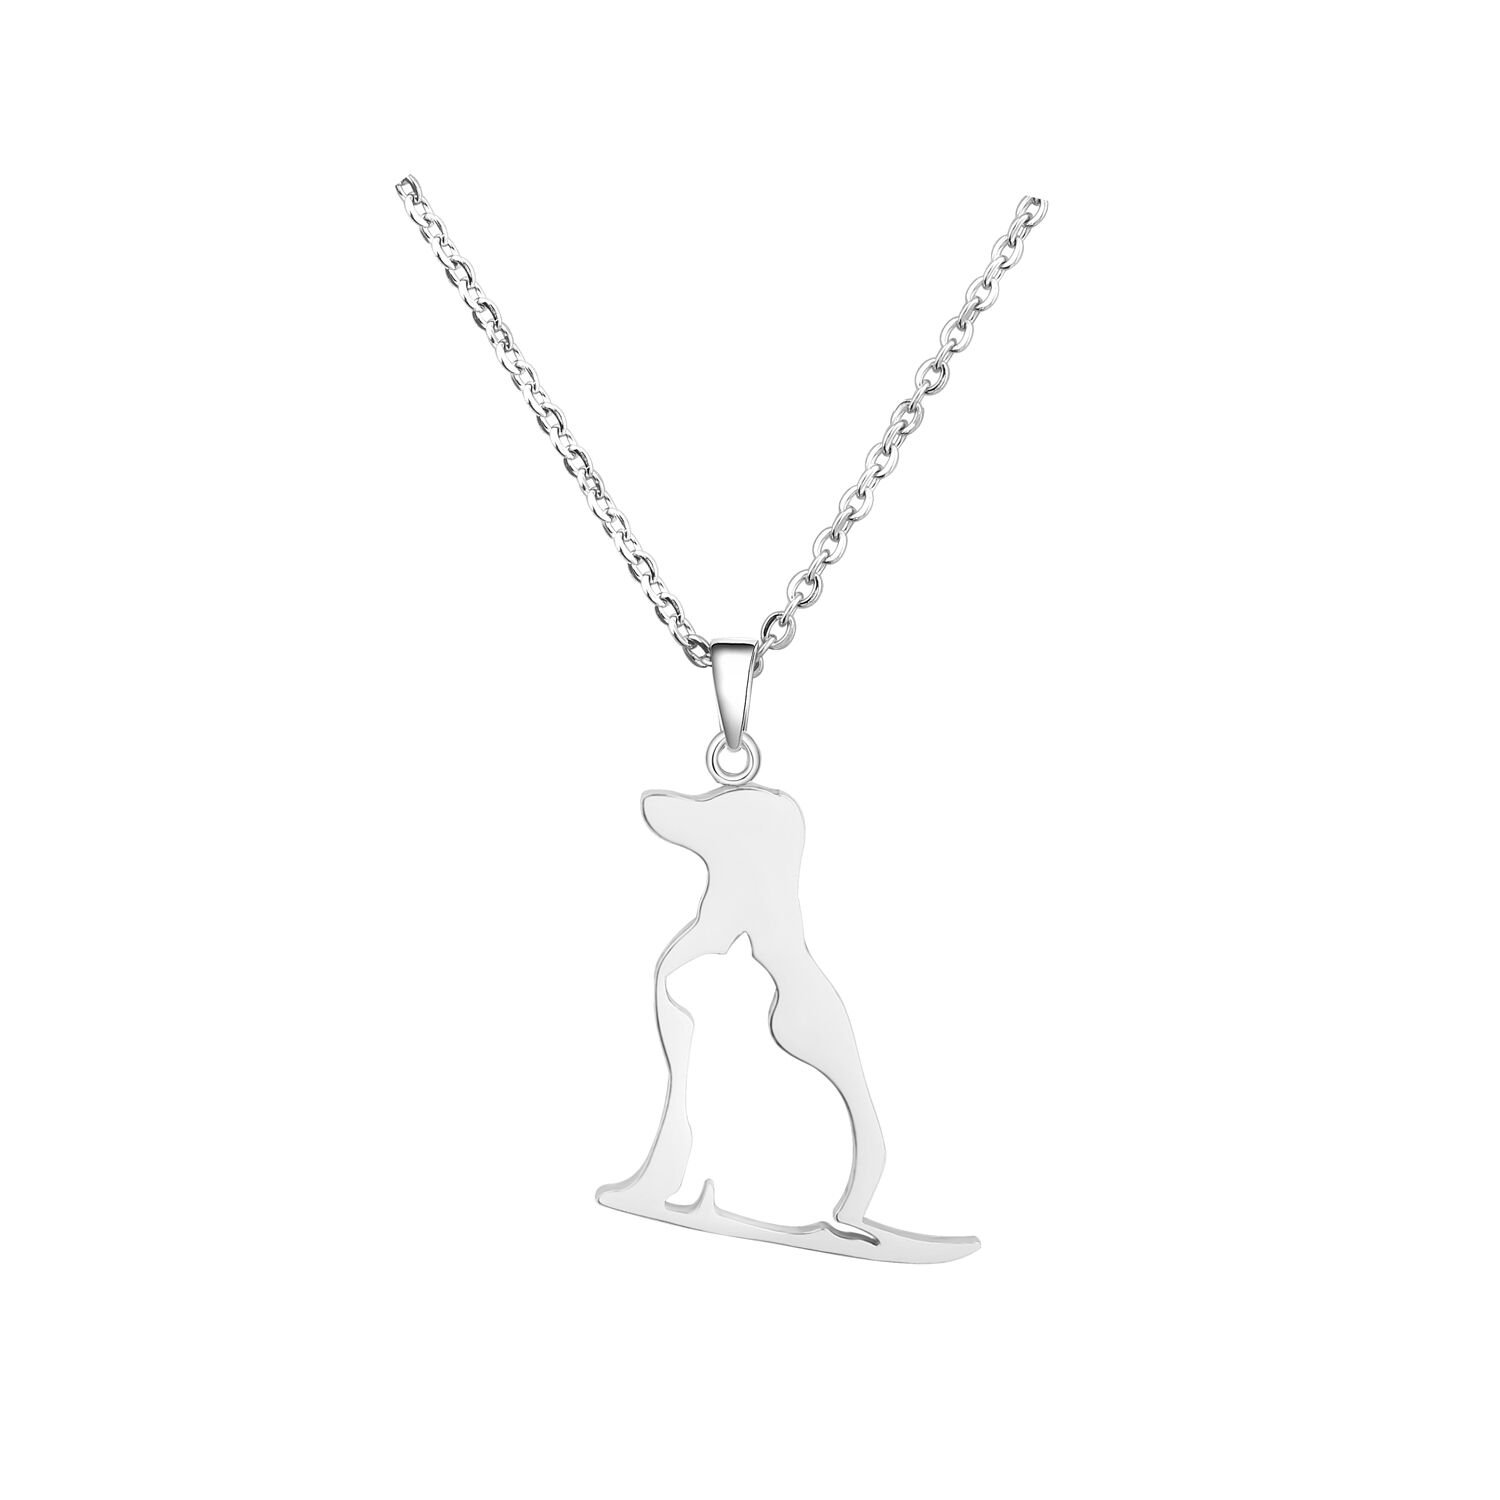 BNQL Dog Cat Necklace Pet Pendant Necklace for Animal Lover (Silver)